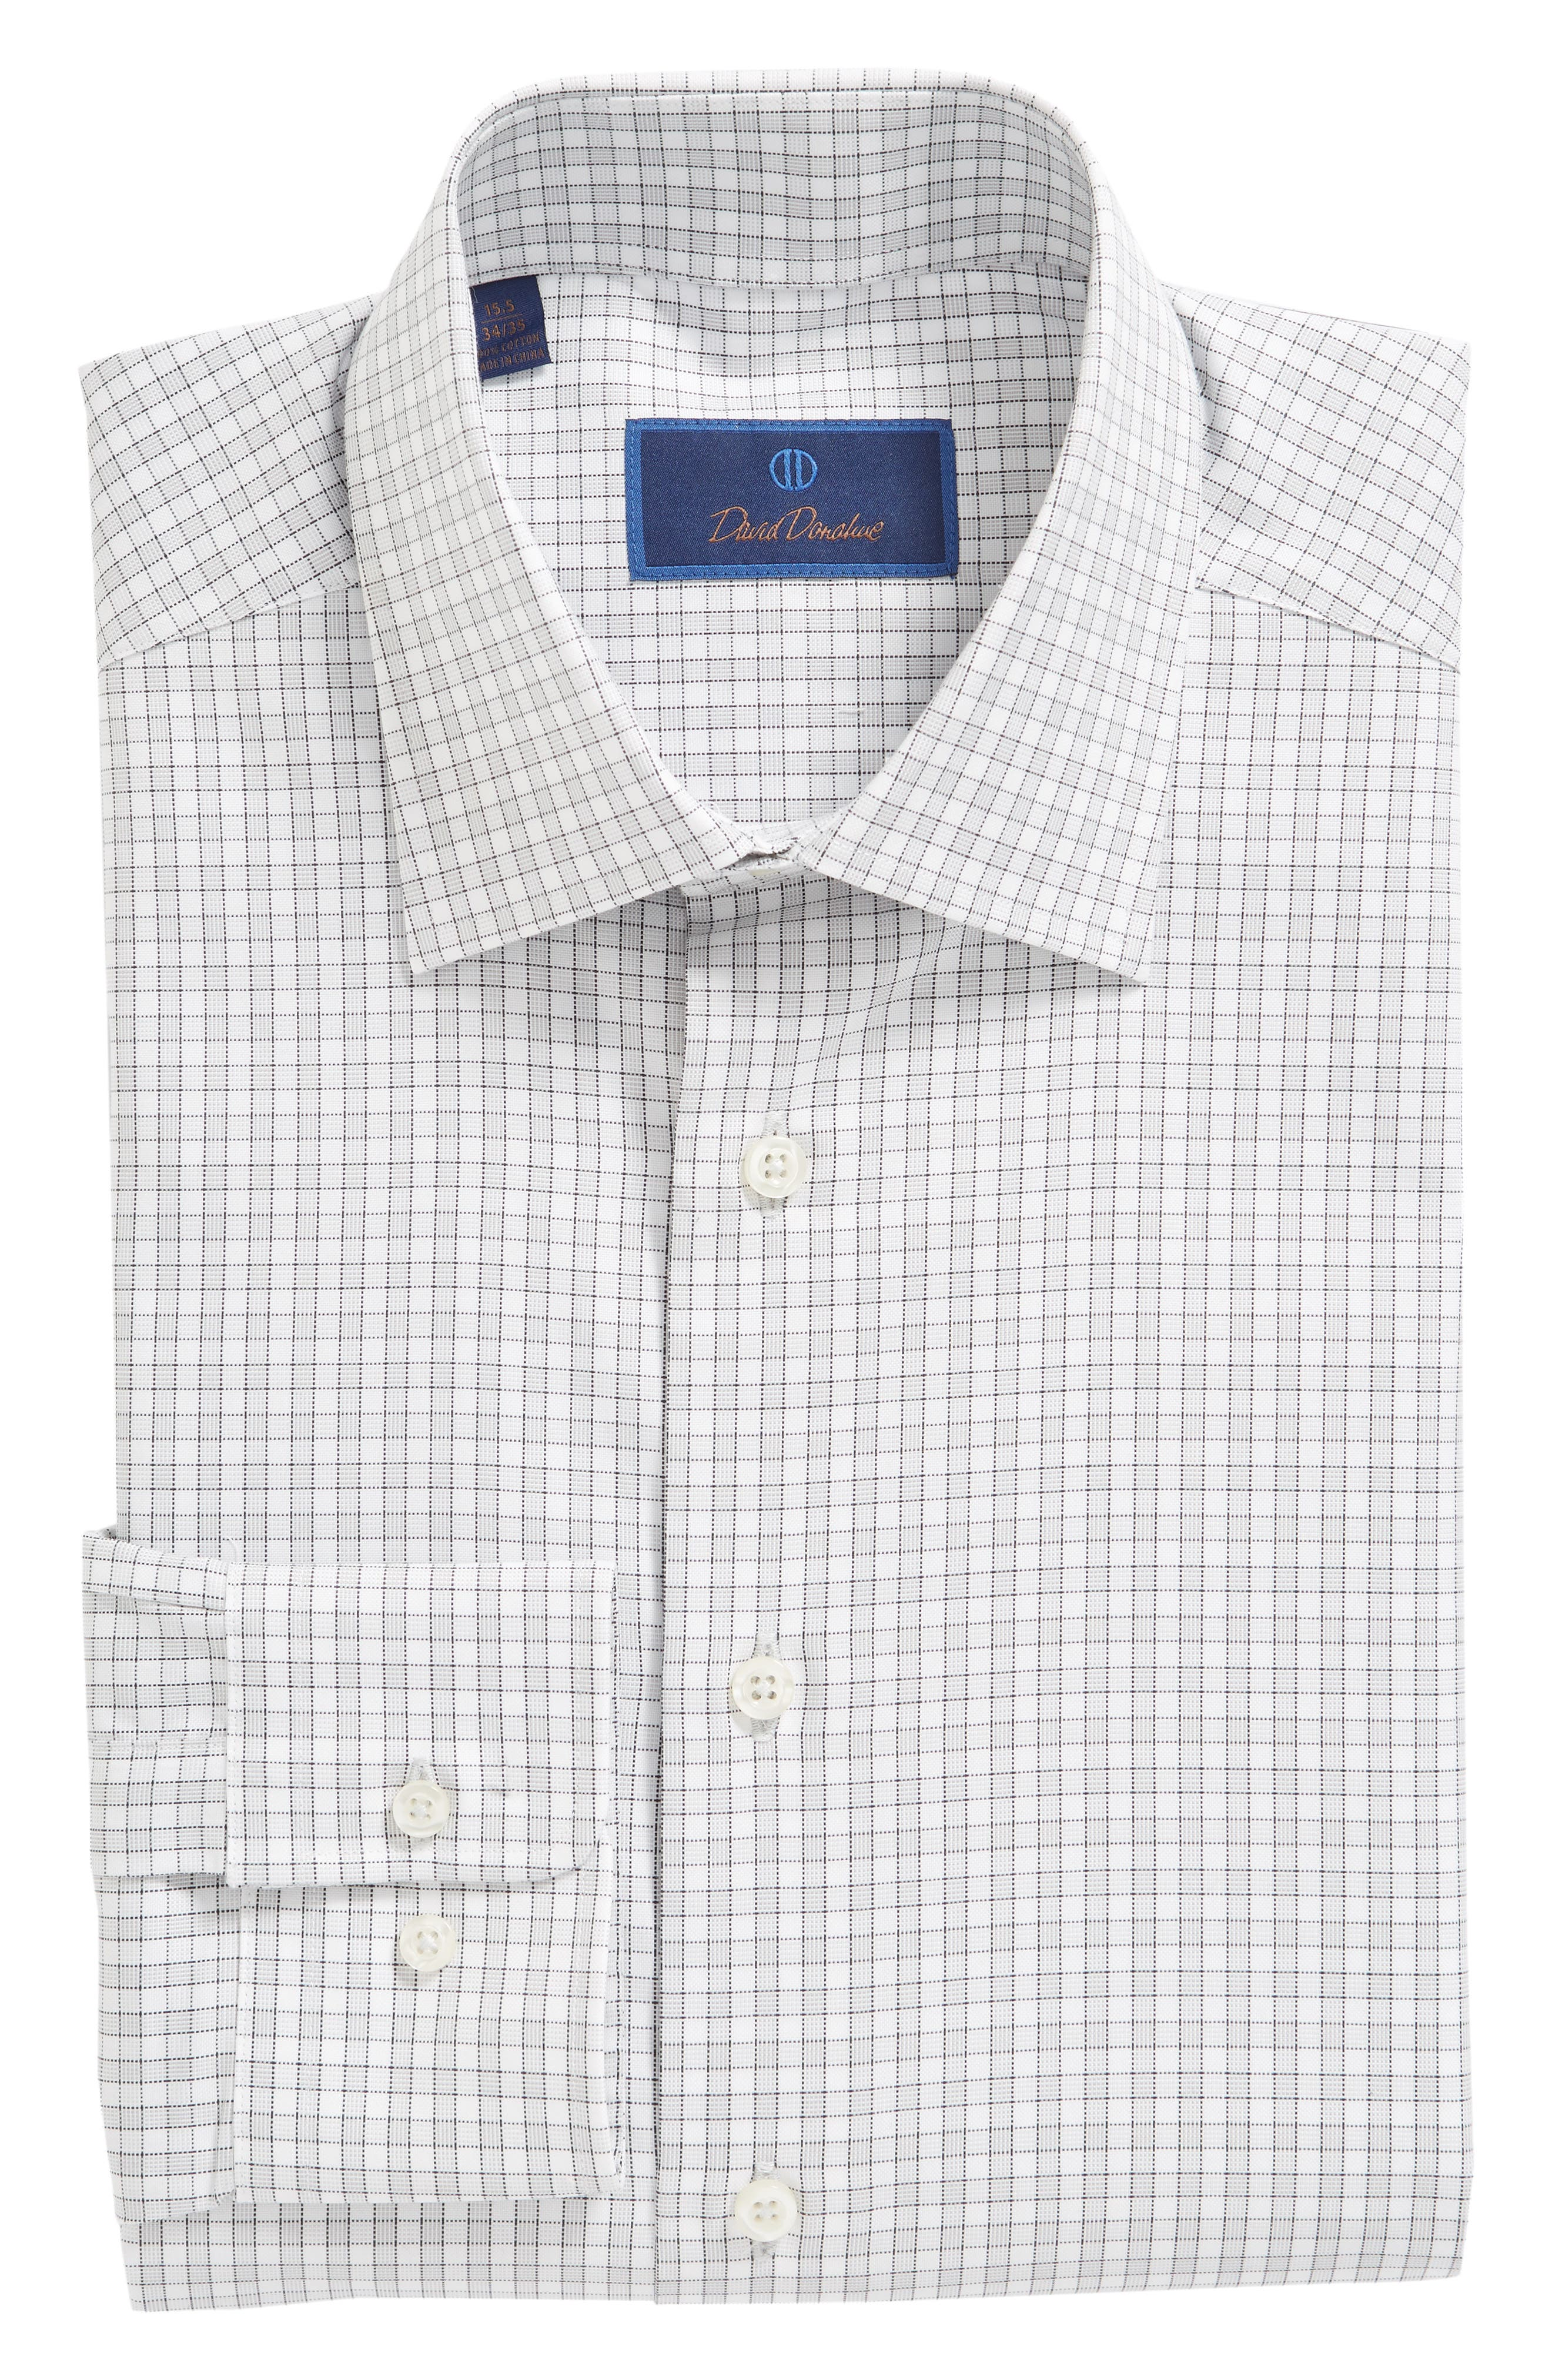 Regular Fit Check Dress Shirt,                             Alternate thumbnail 5, color,                             GRAY